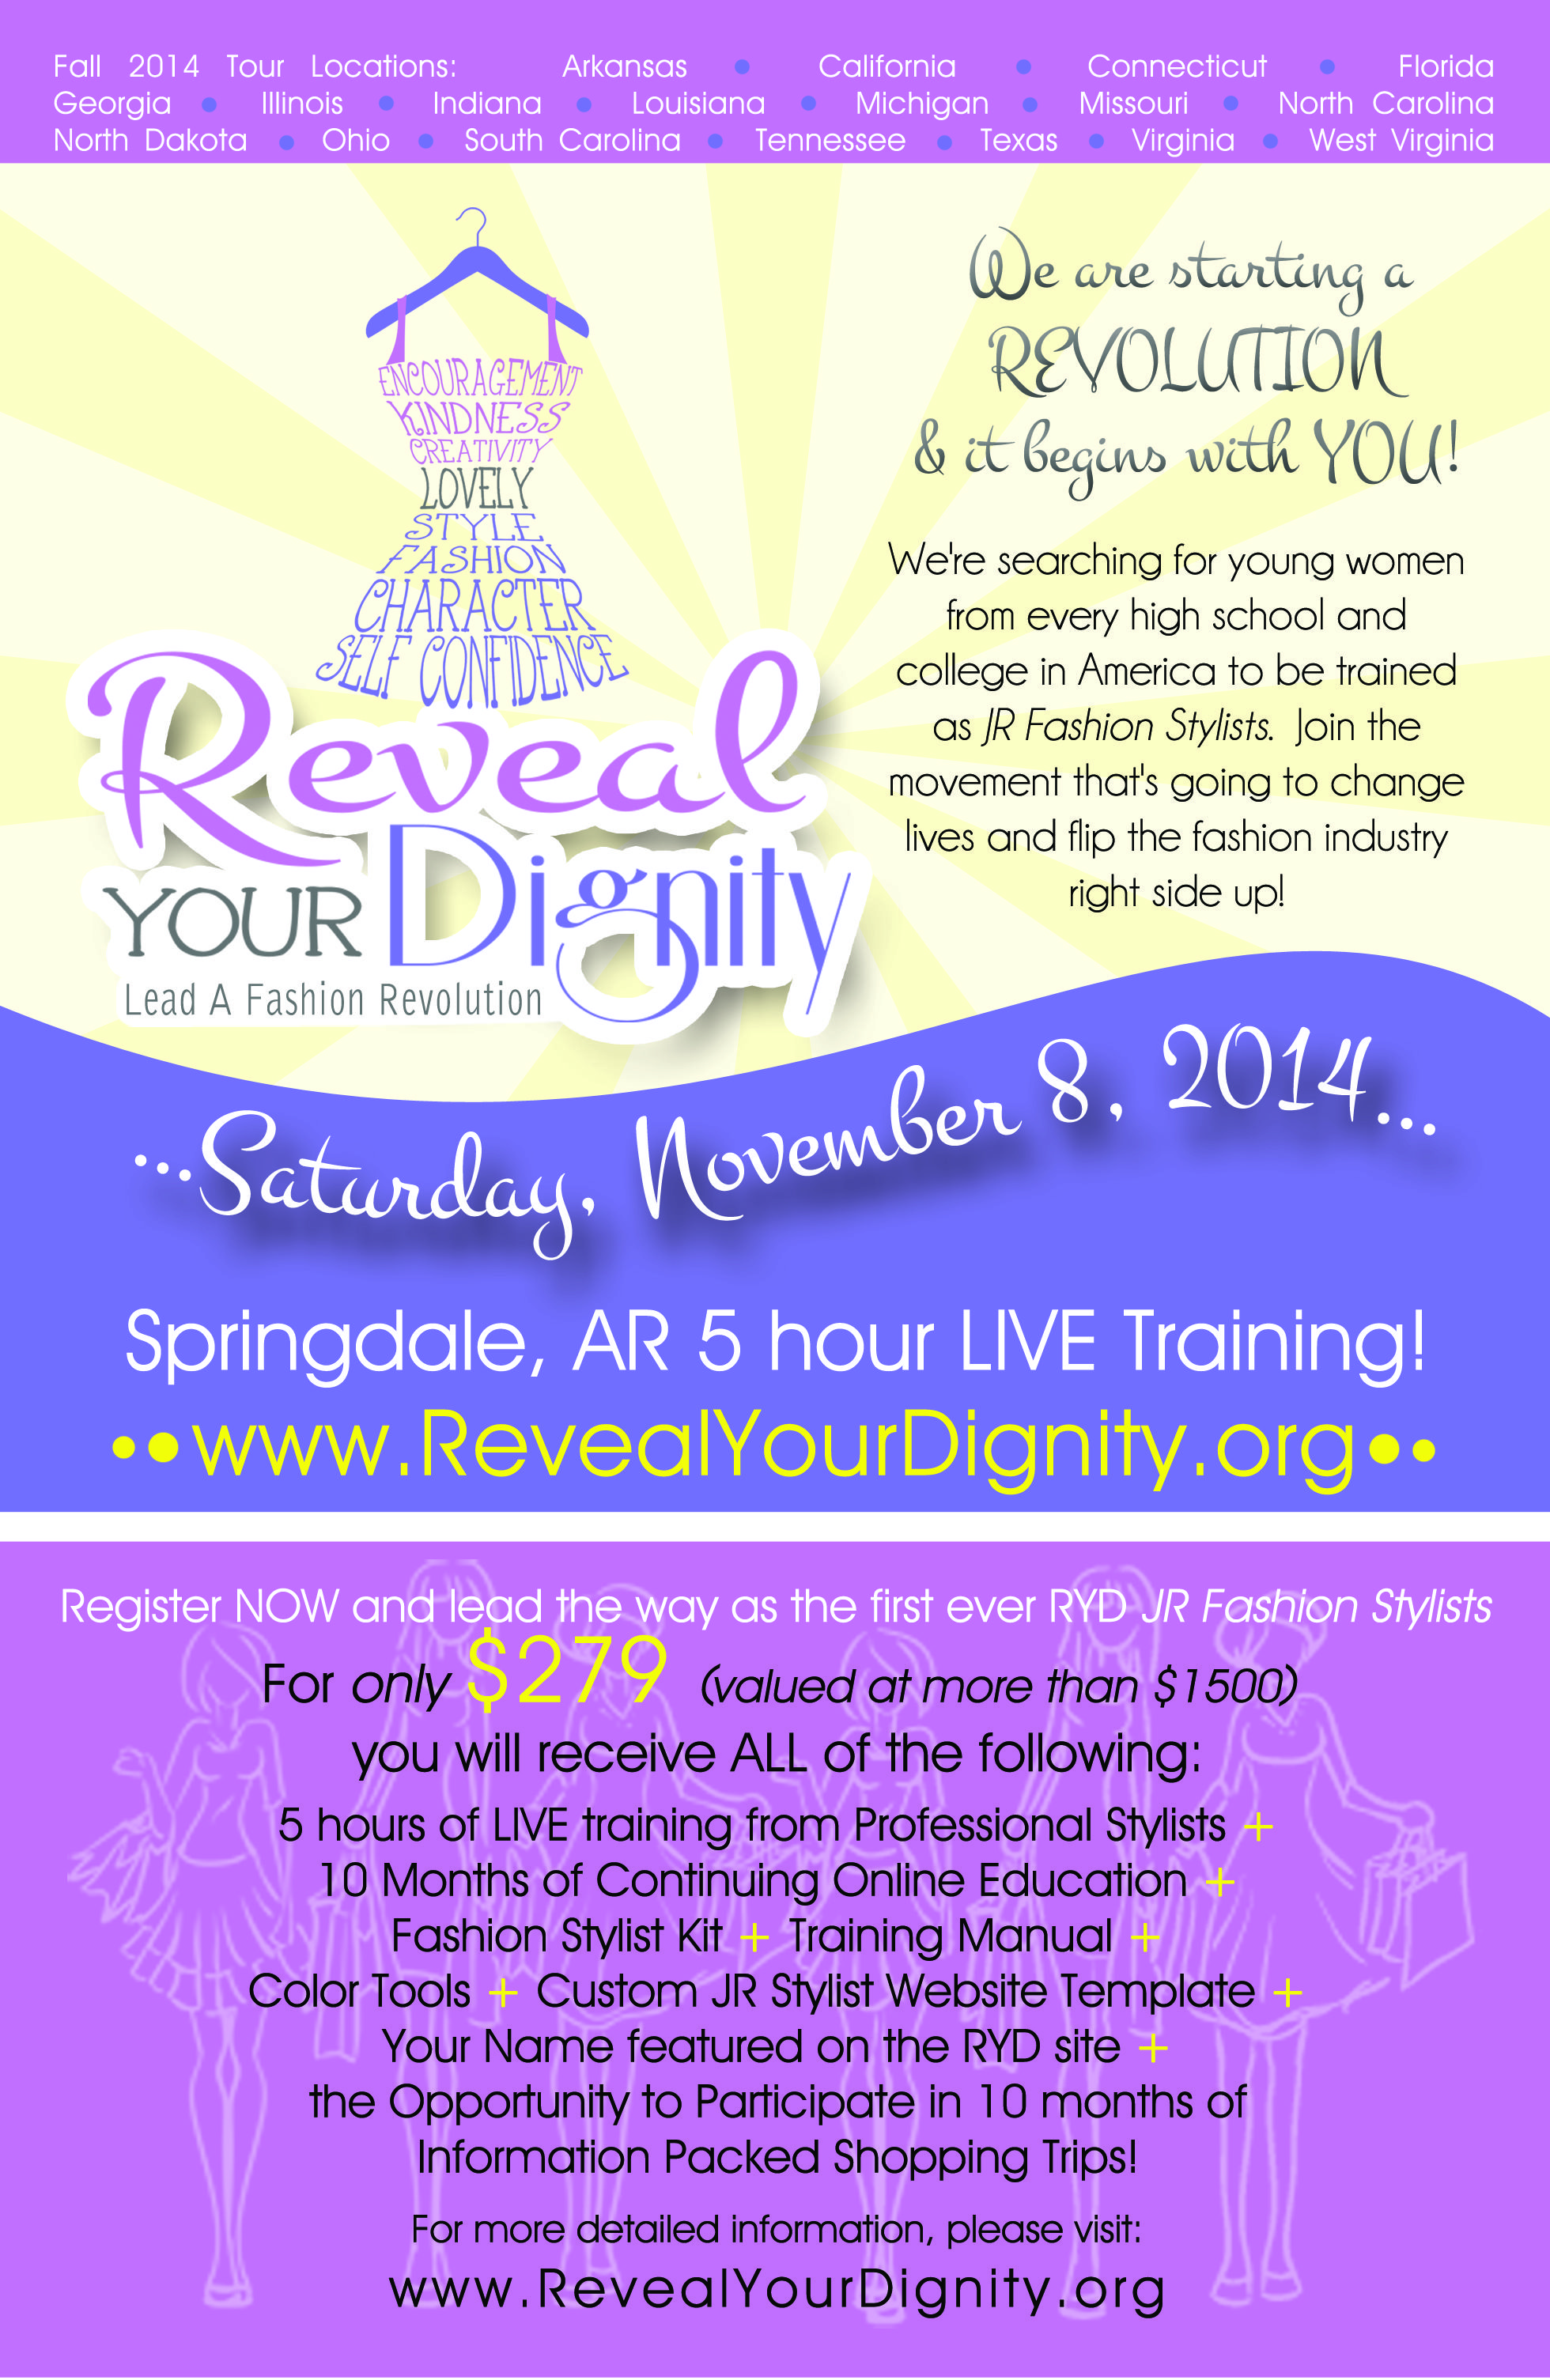 Saturday, November 8, 2014 in Springdale, AR training for